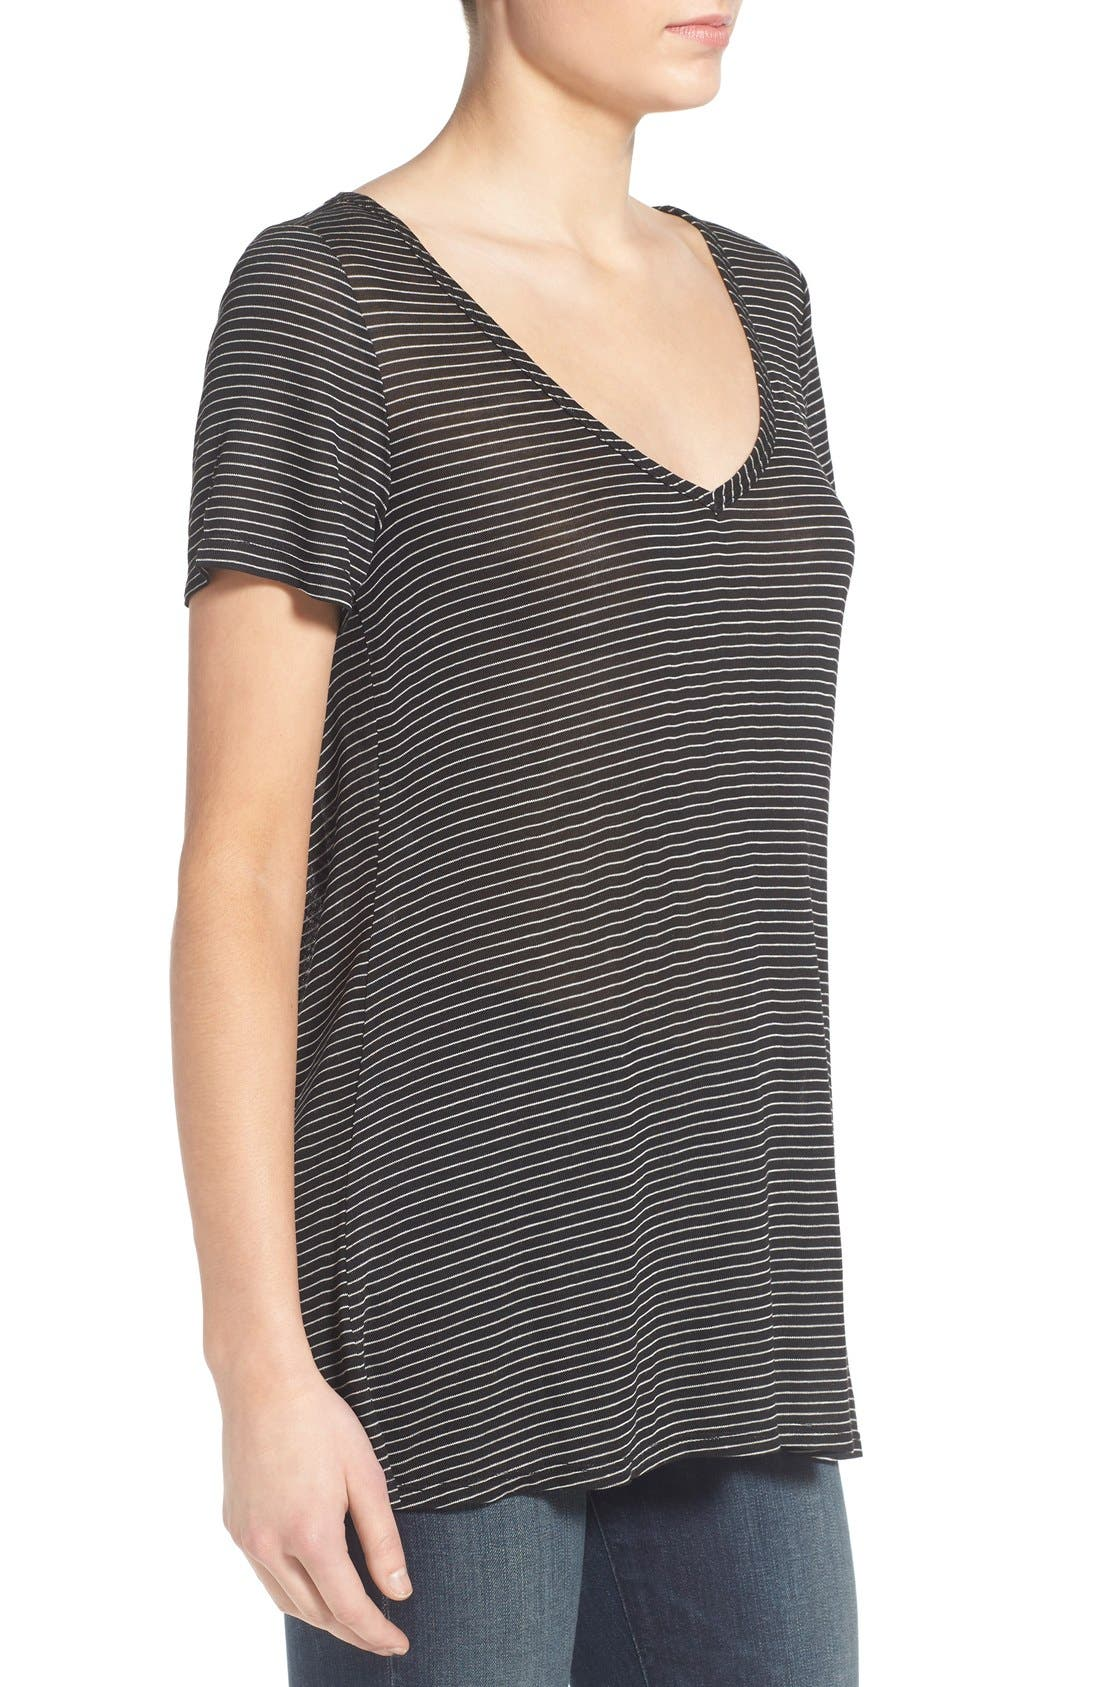 SOCIALITE, Stripe Back Cutout Tee, Alternate thumbnail 5, color, 003